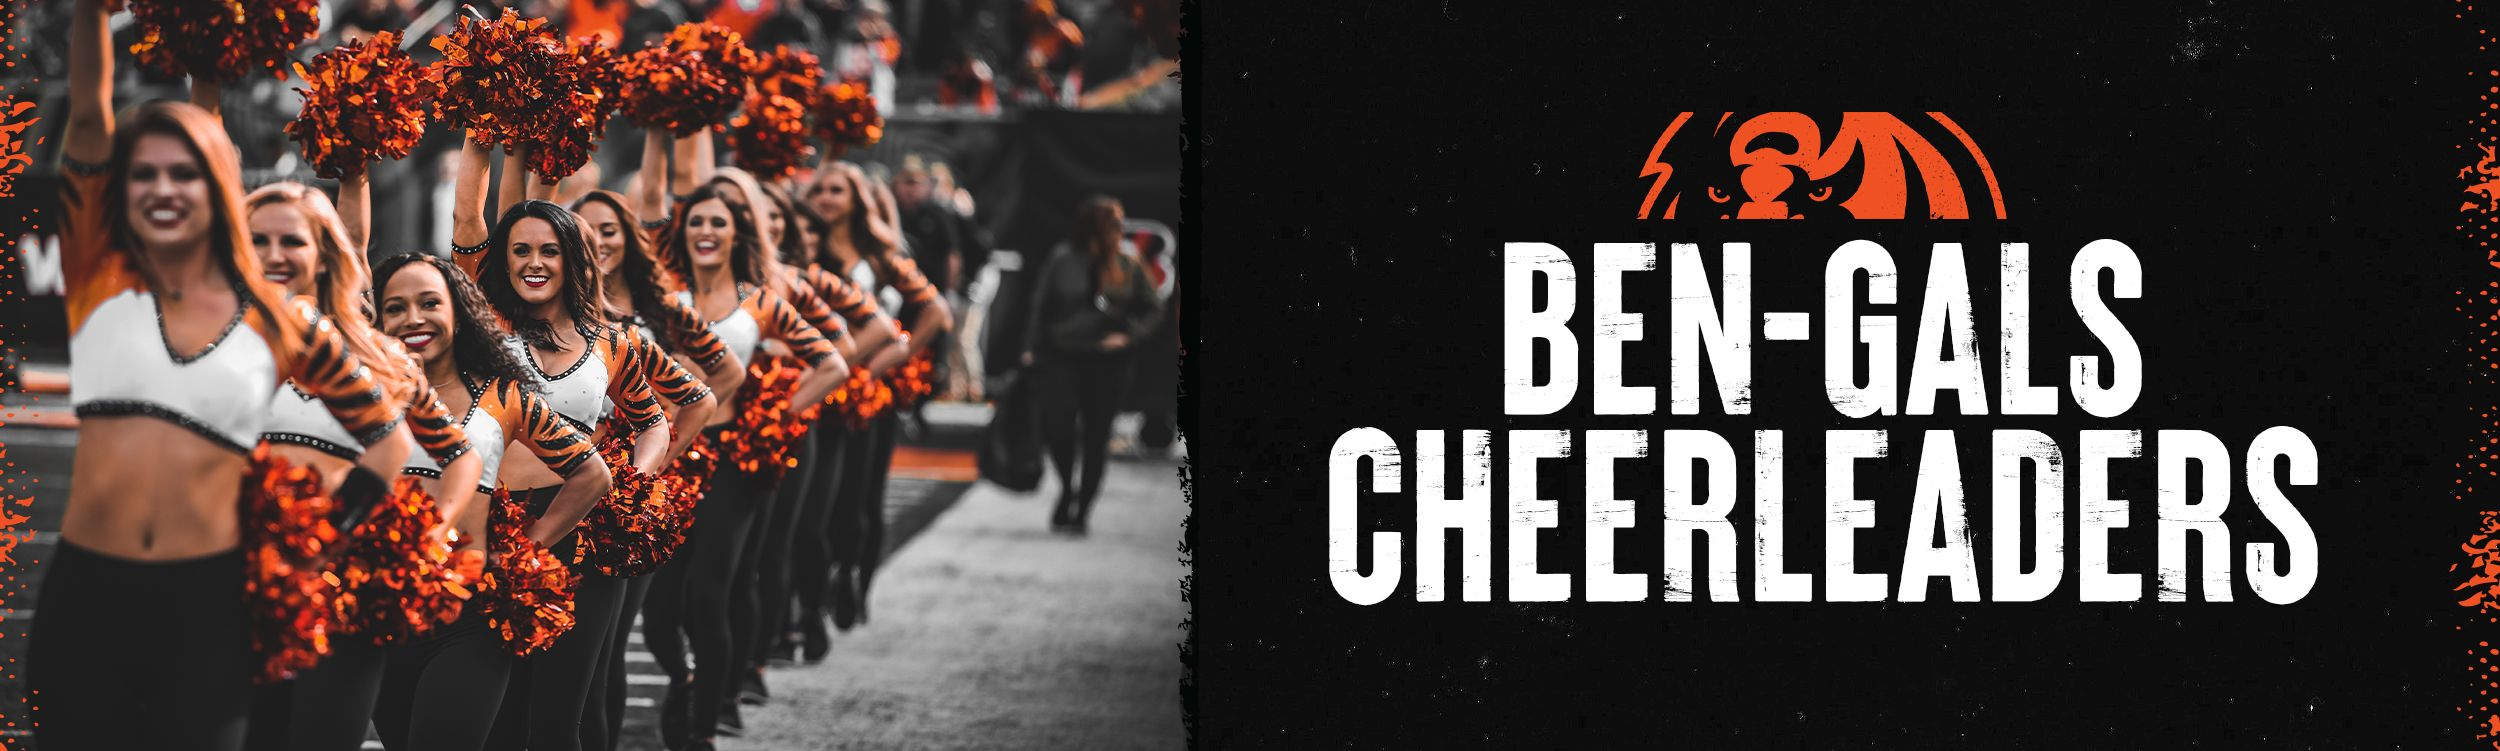 BEN-CHEERLEADERS